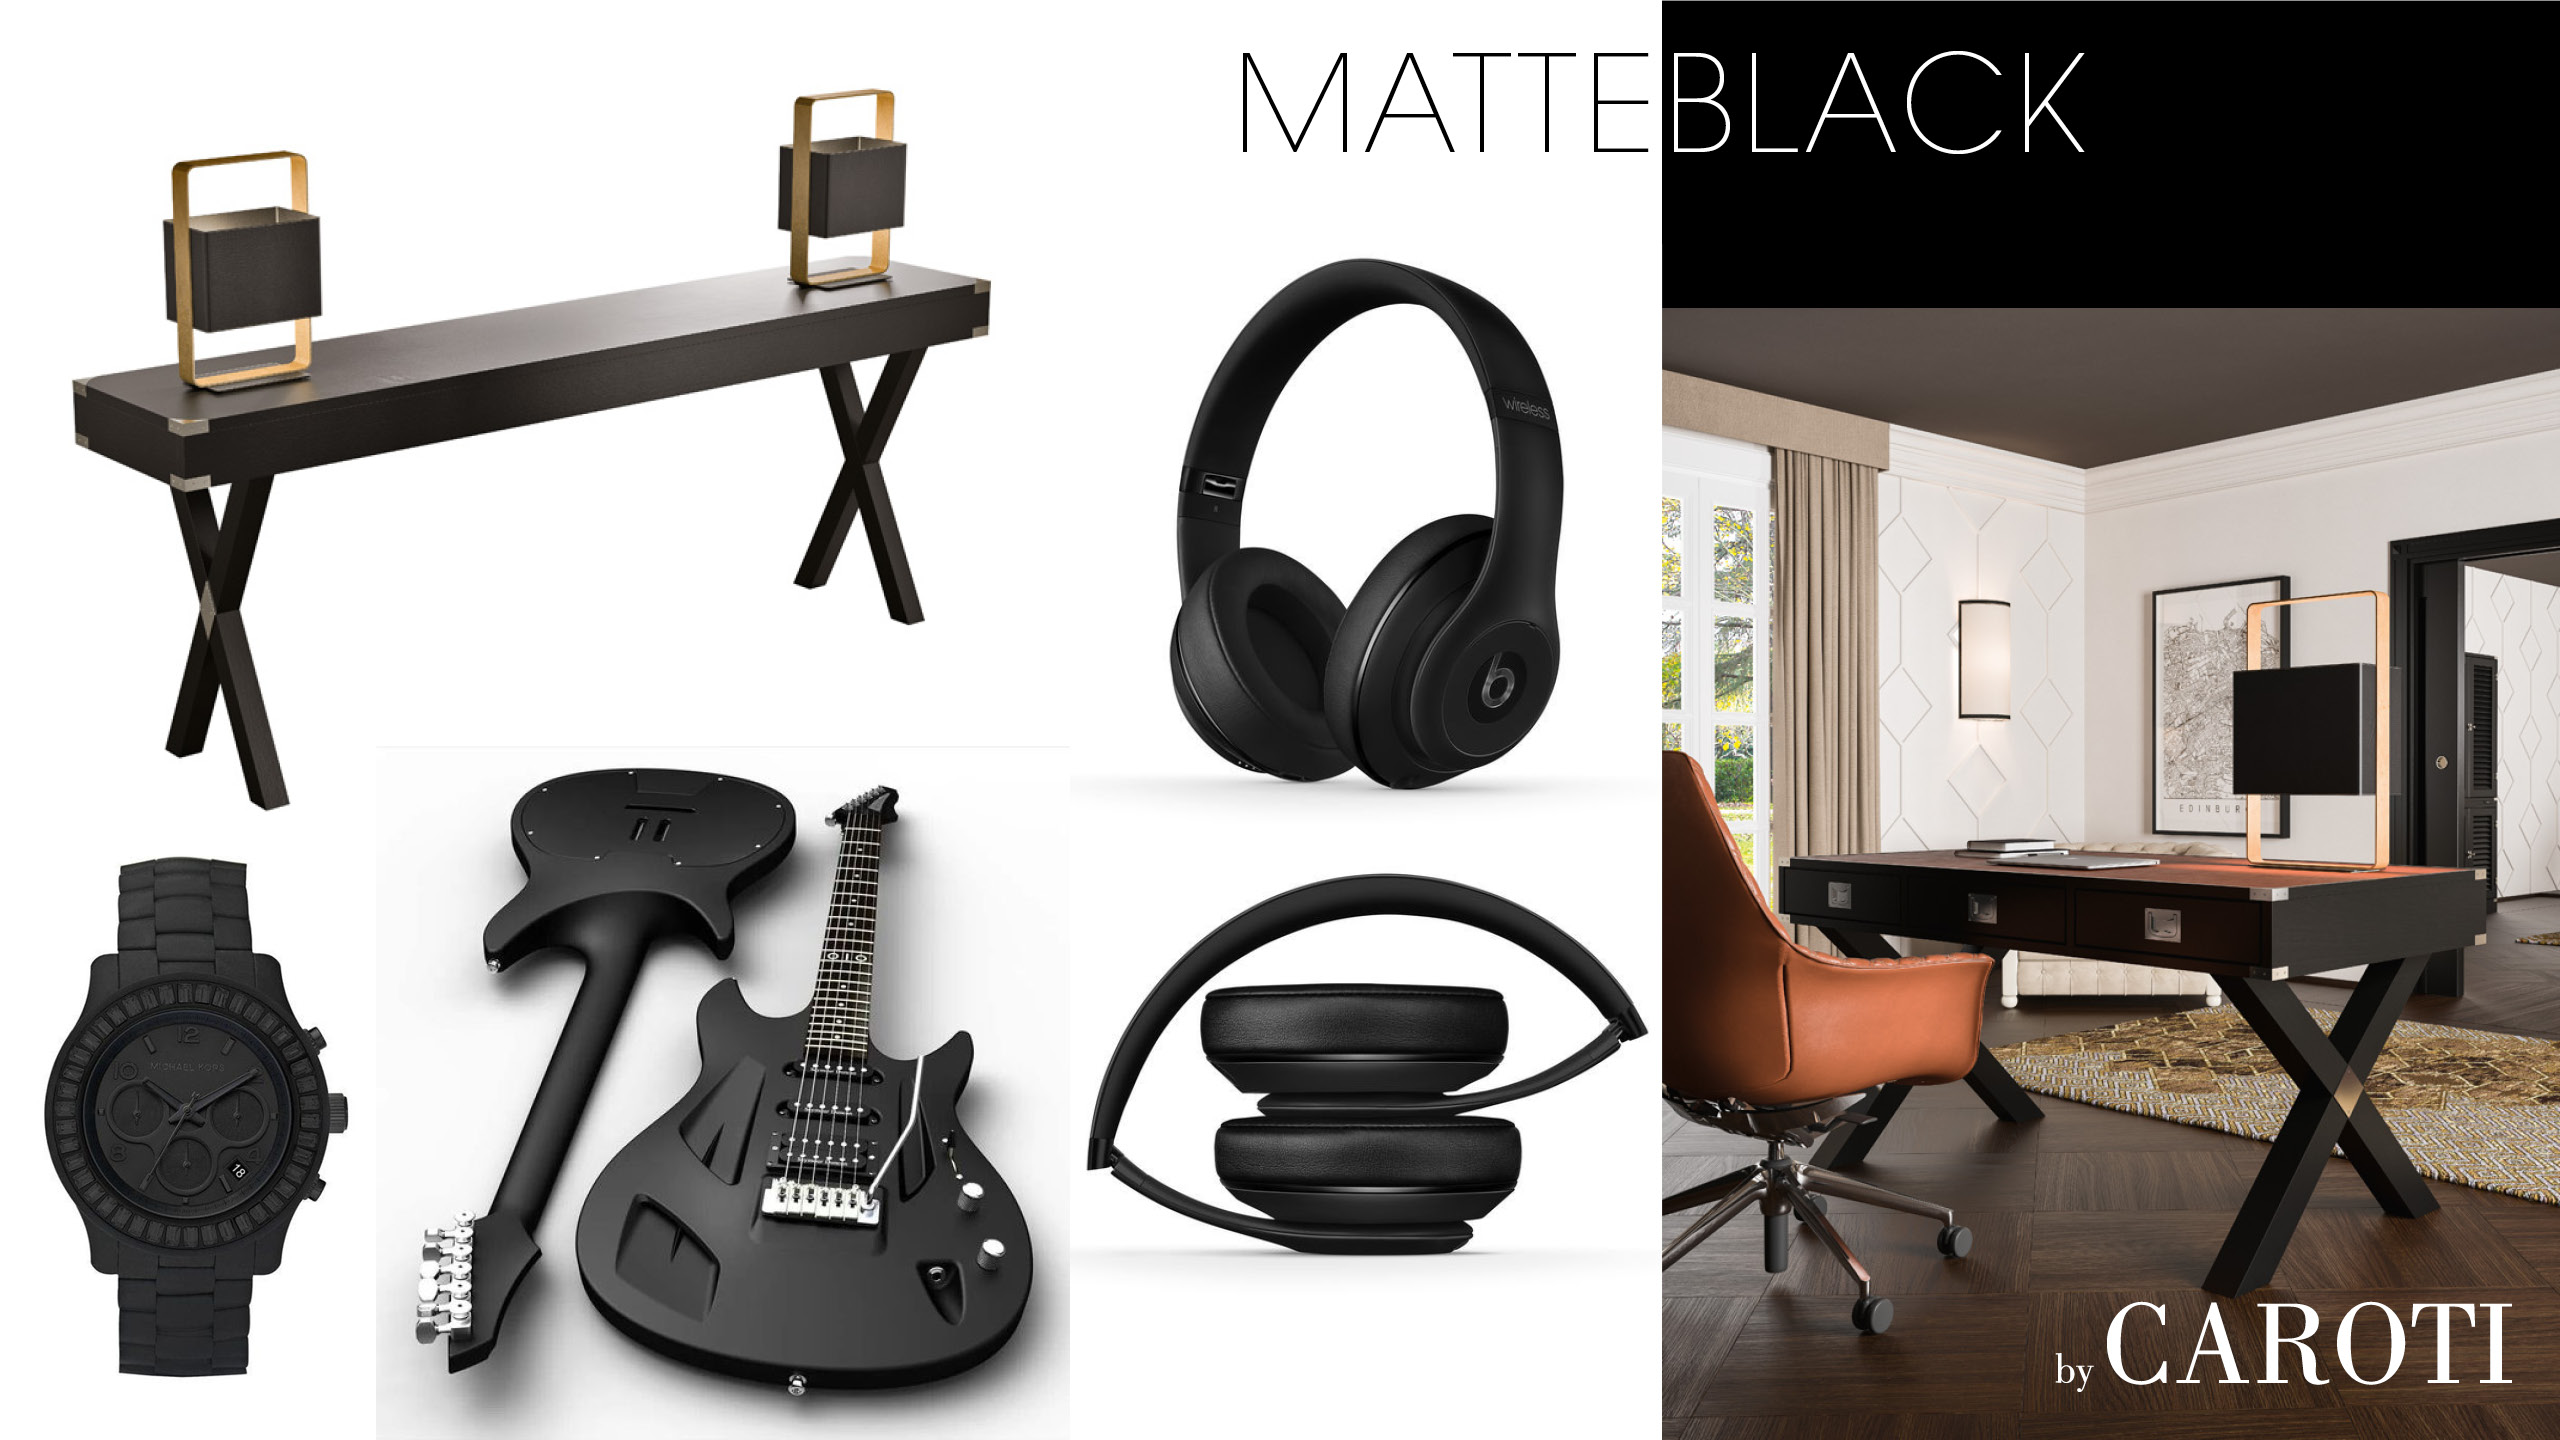 matt black luxury materic music technology office